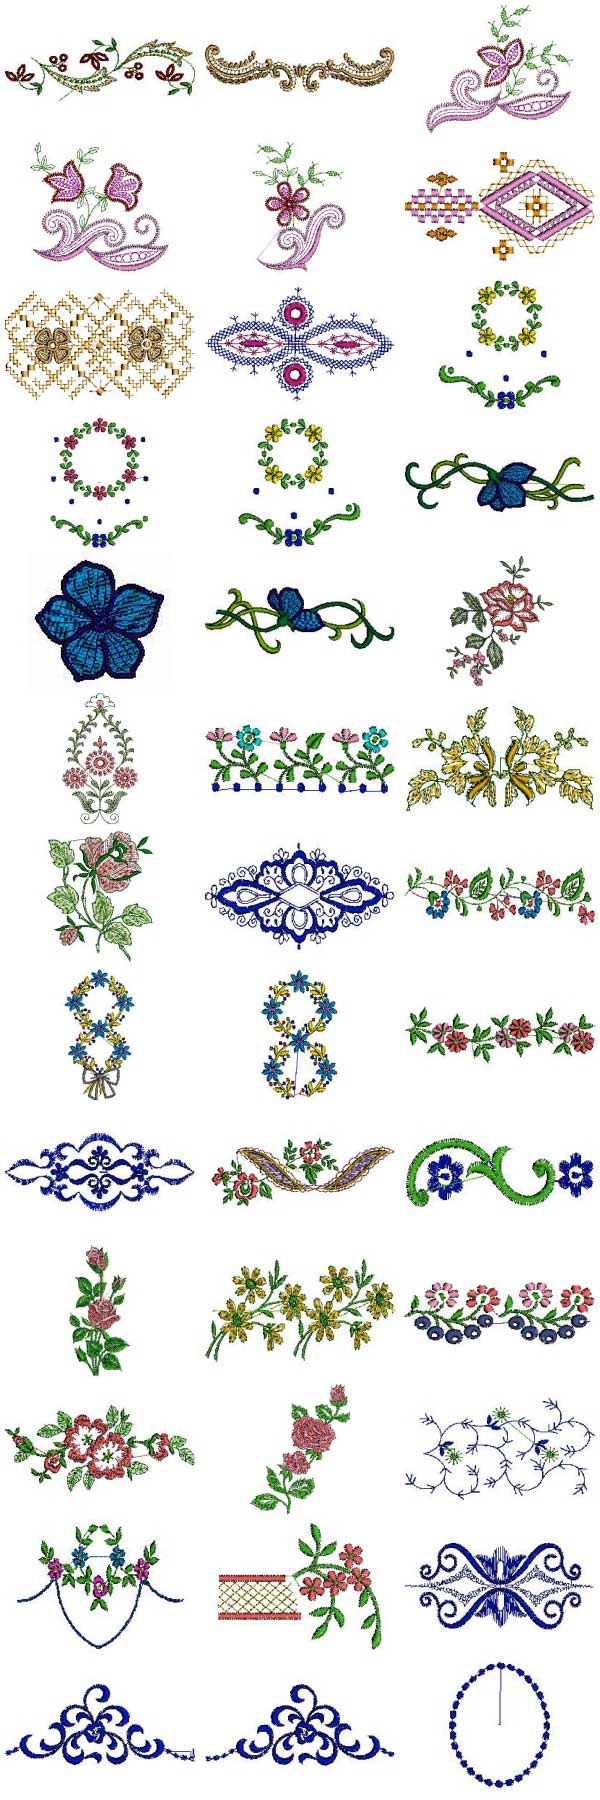 Linens 4x4 Embroidery Machine Design Details